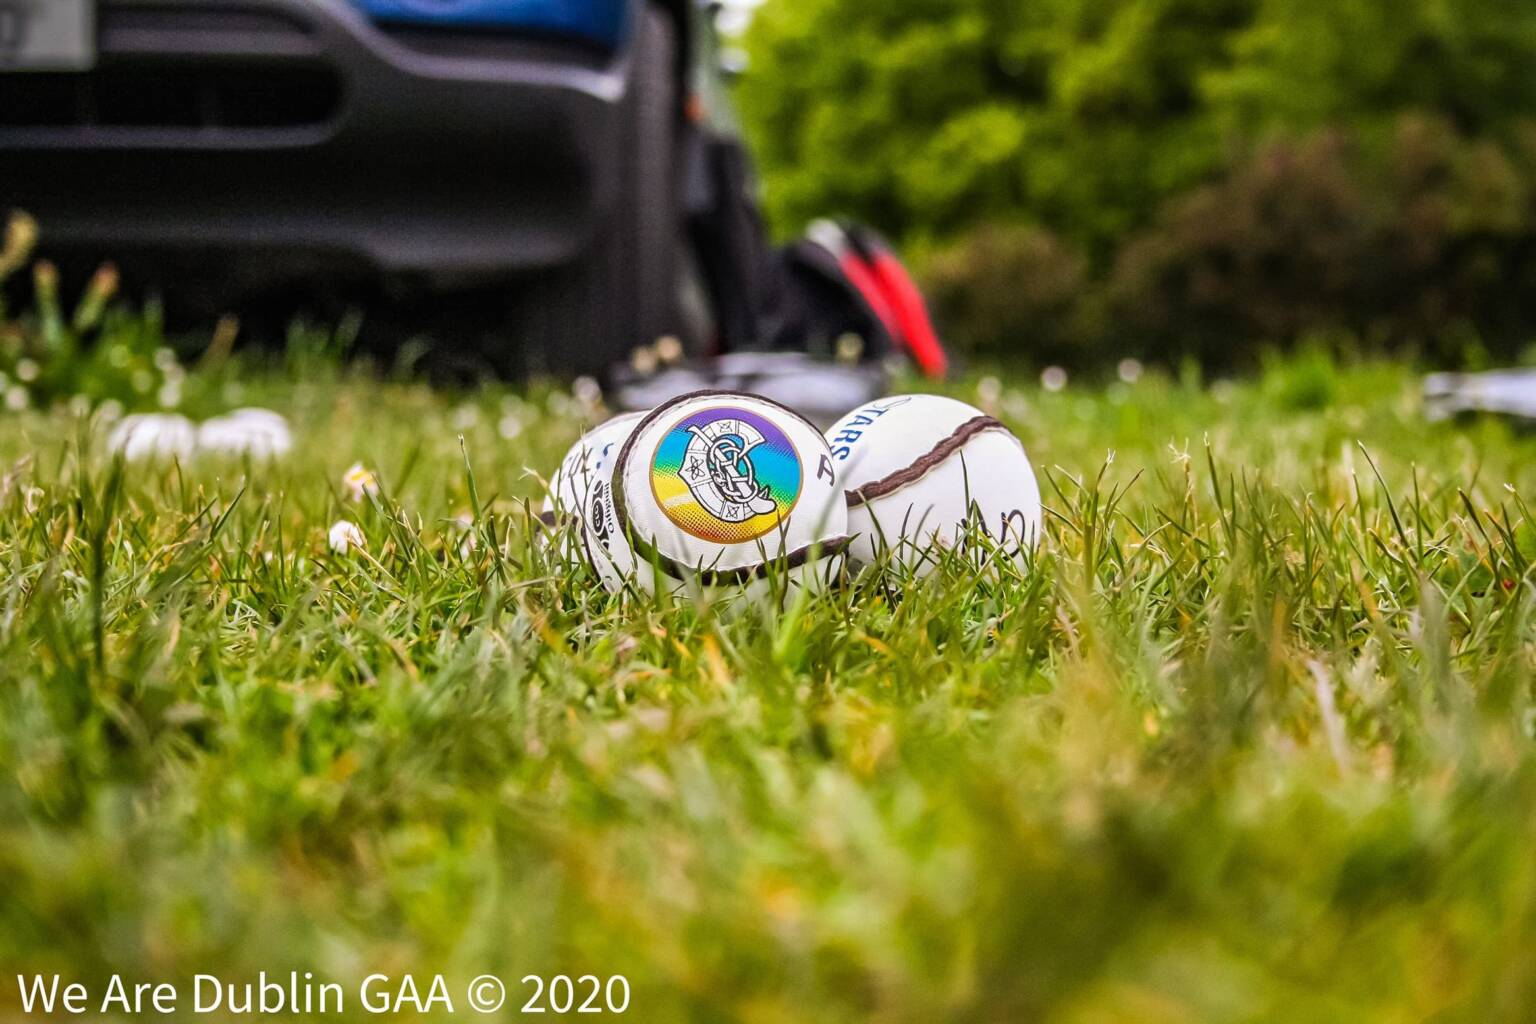 Three sliotars with the camogie logo, the Camogie Association have suspended all Camogie Club games until further notice